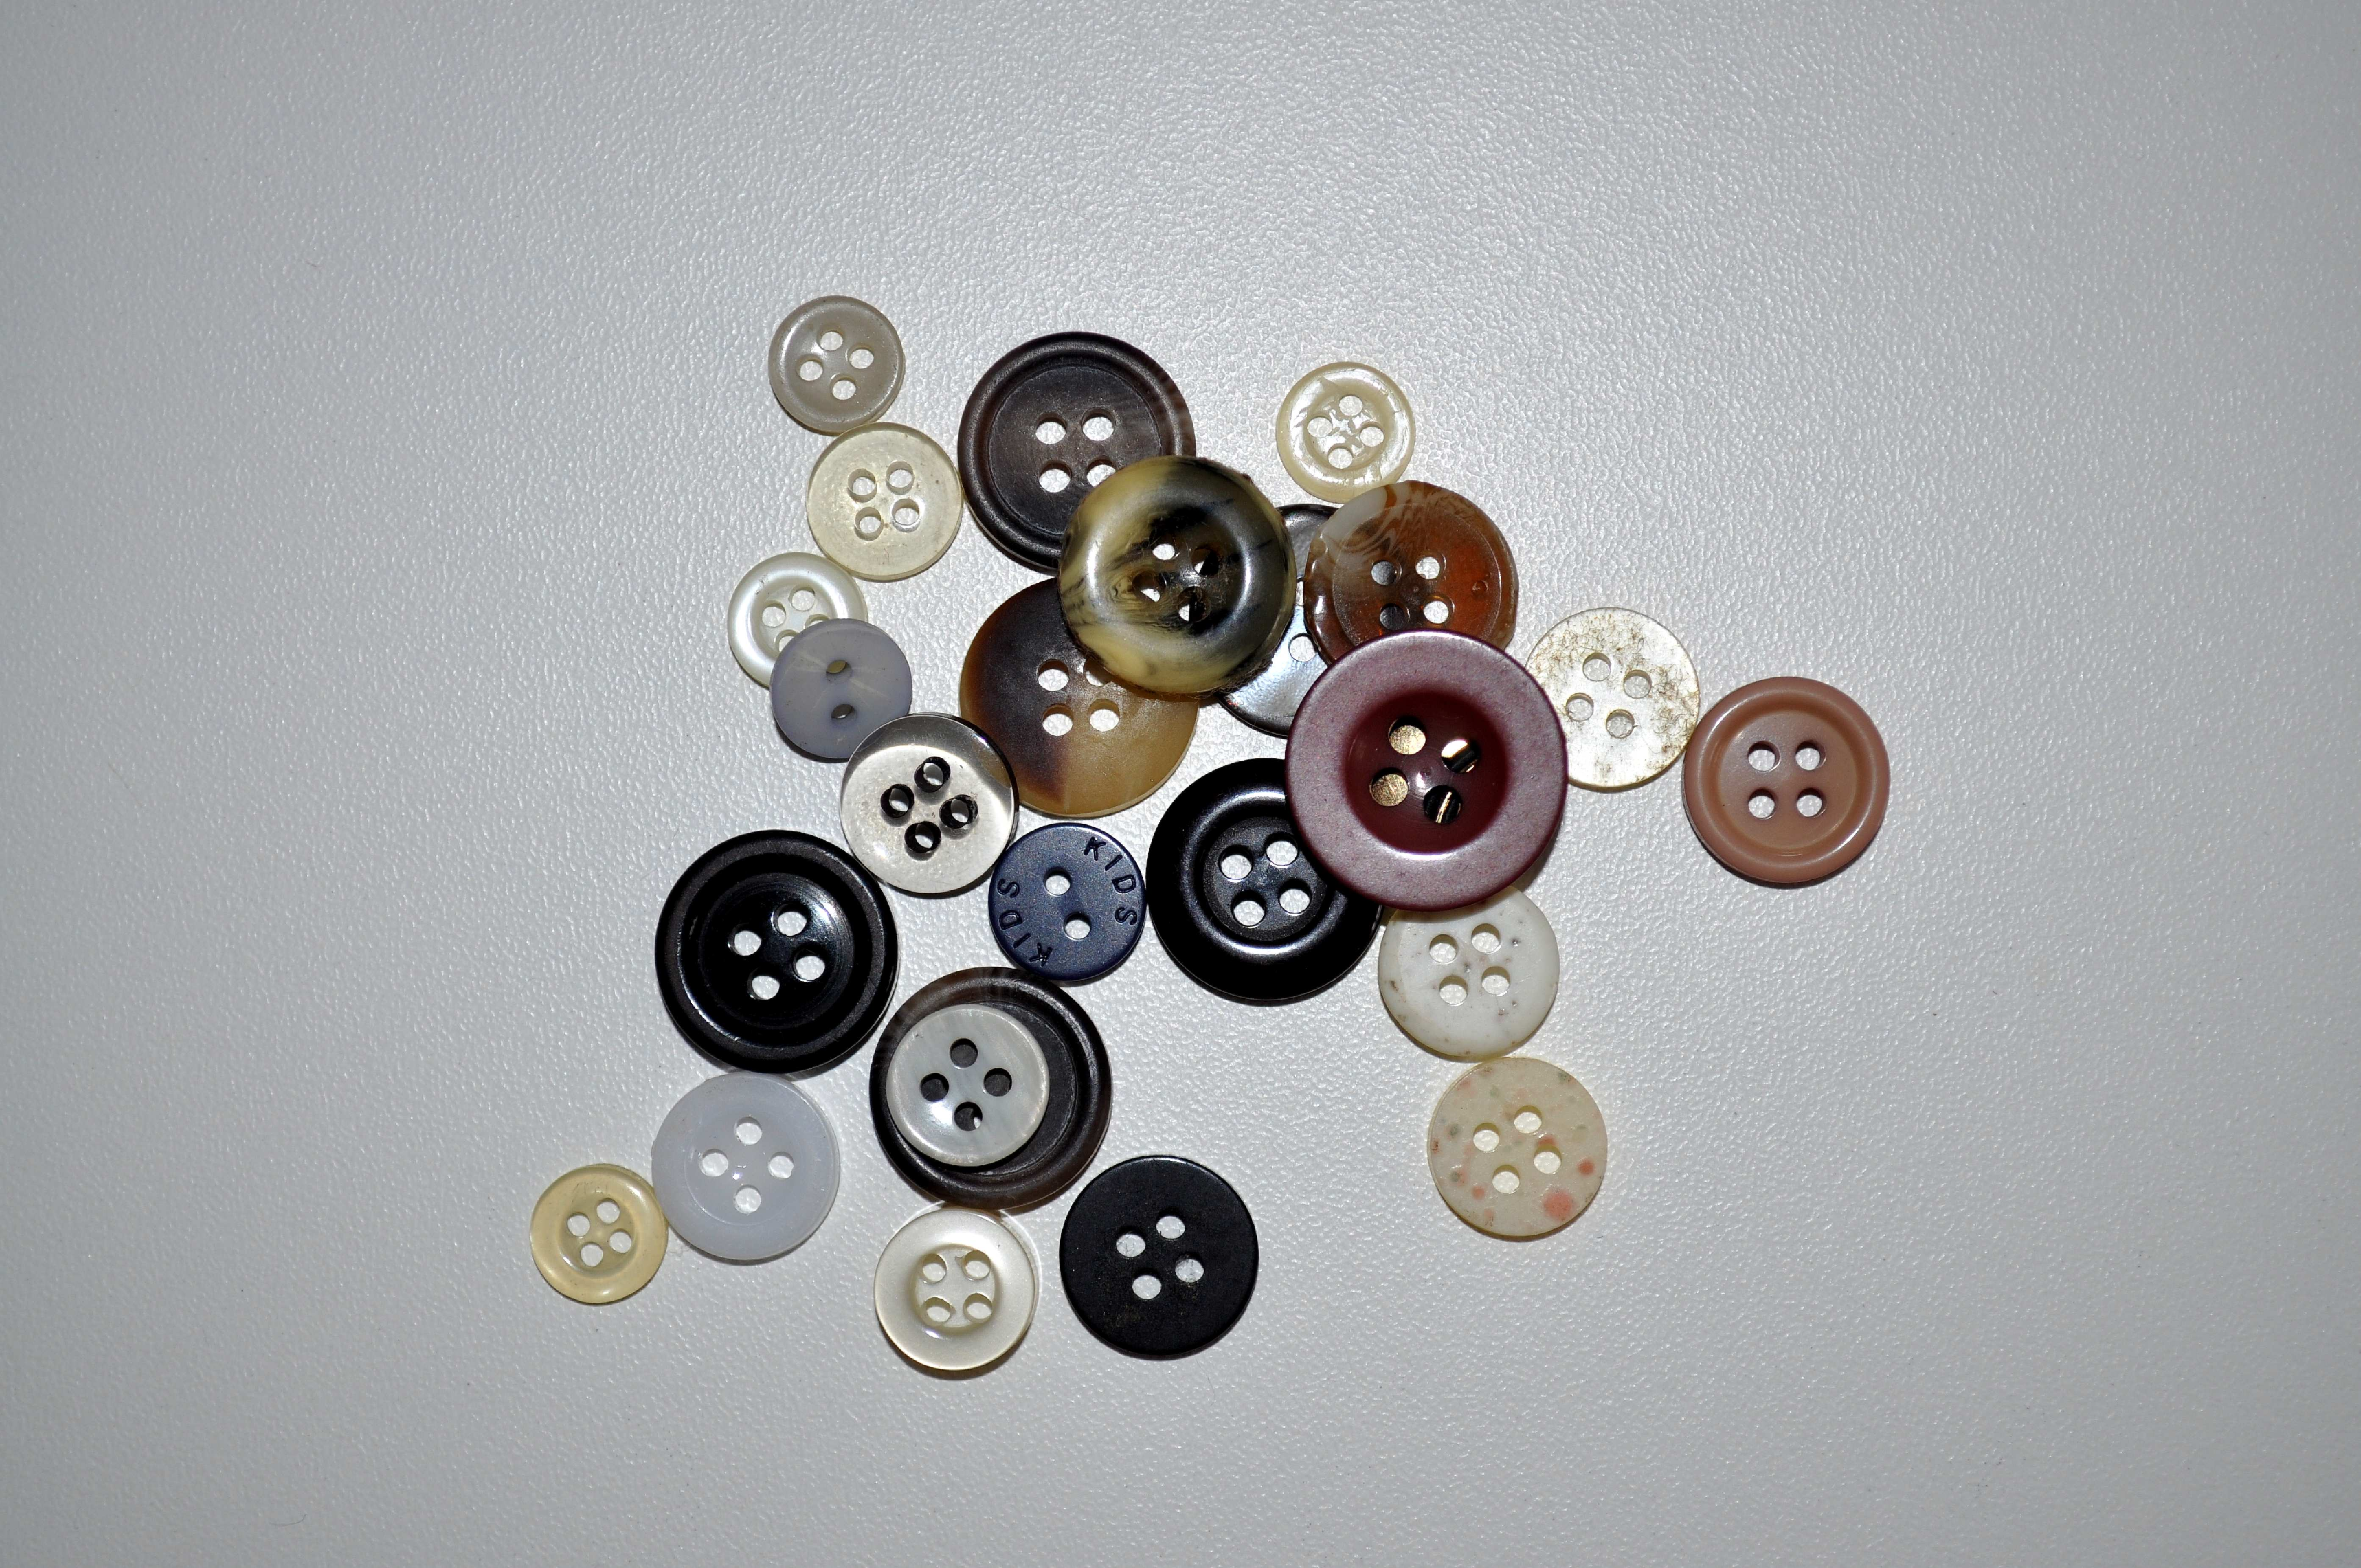 Free photograph; sewing, buttons, white, background